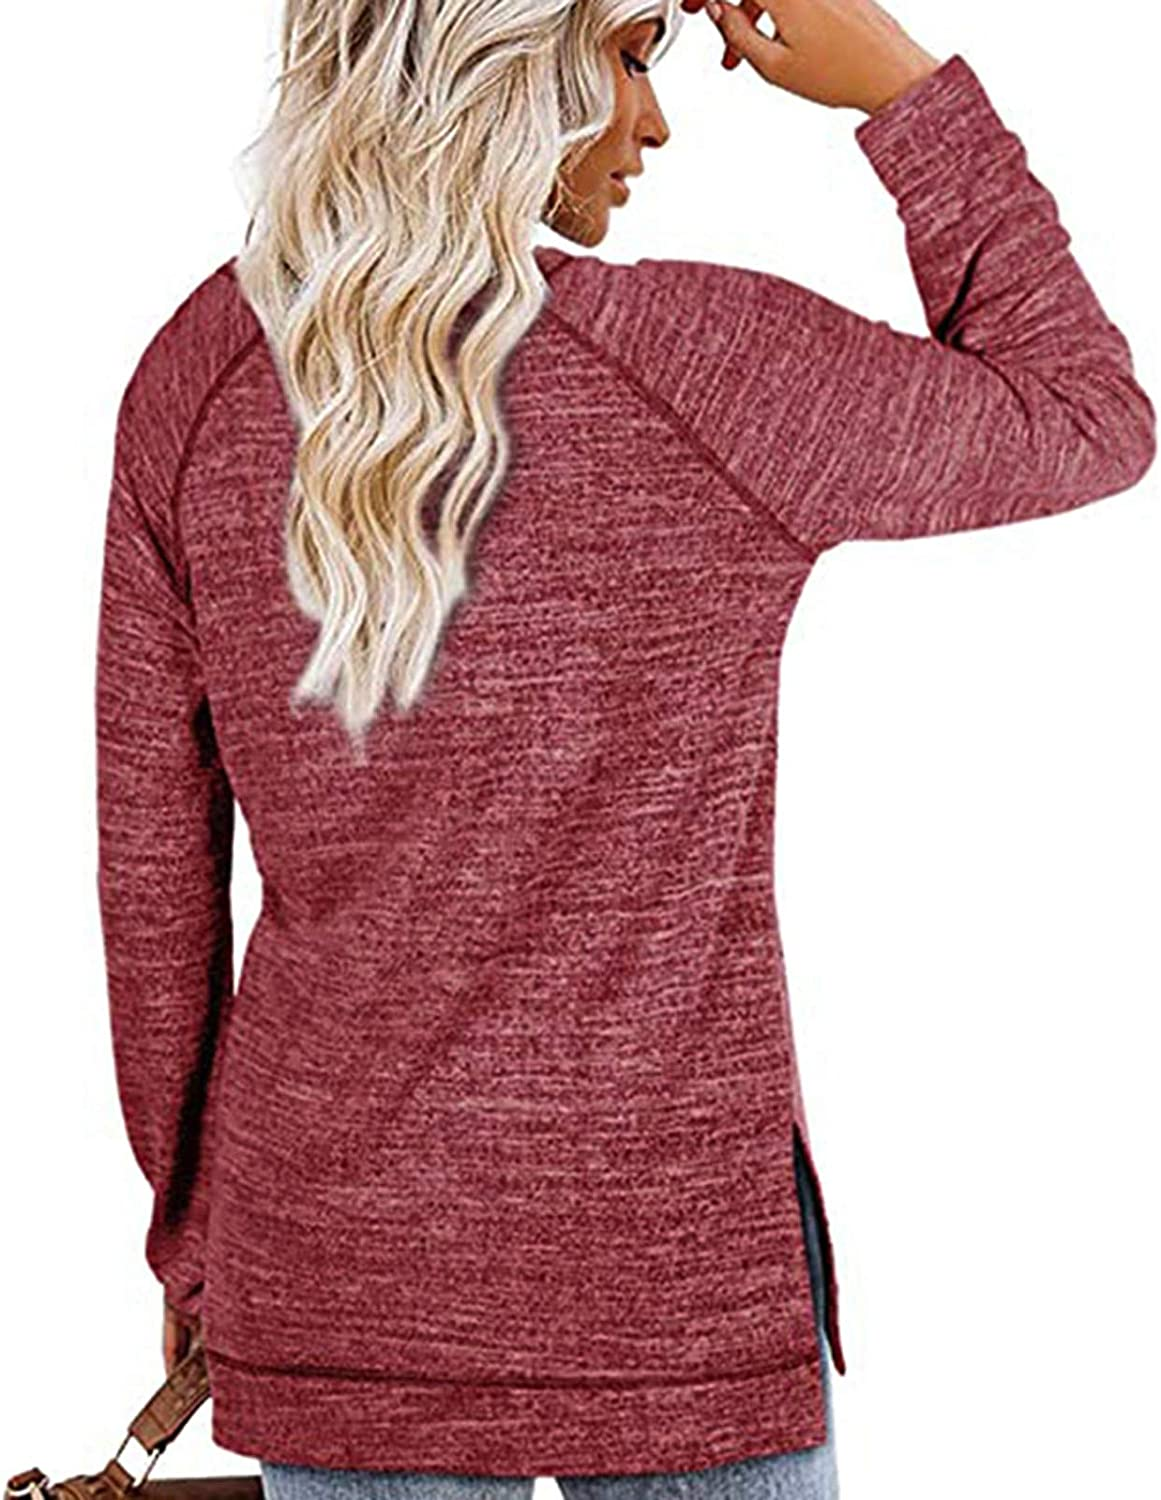 AODONG Womens Long Sleeve Tops,Womens Casual Round Neck Oversized Sweatshirts Tunic Tops